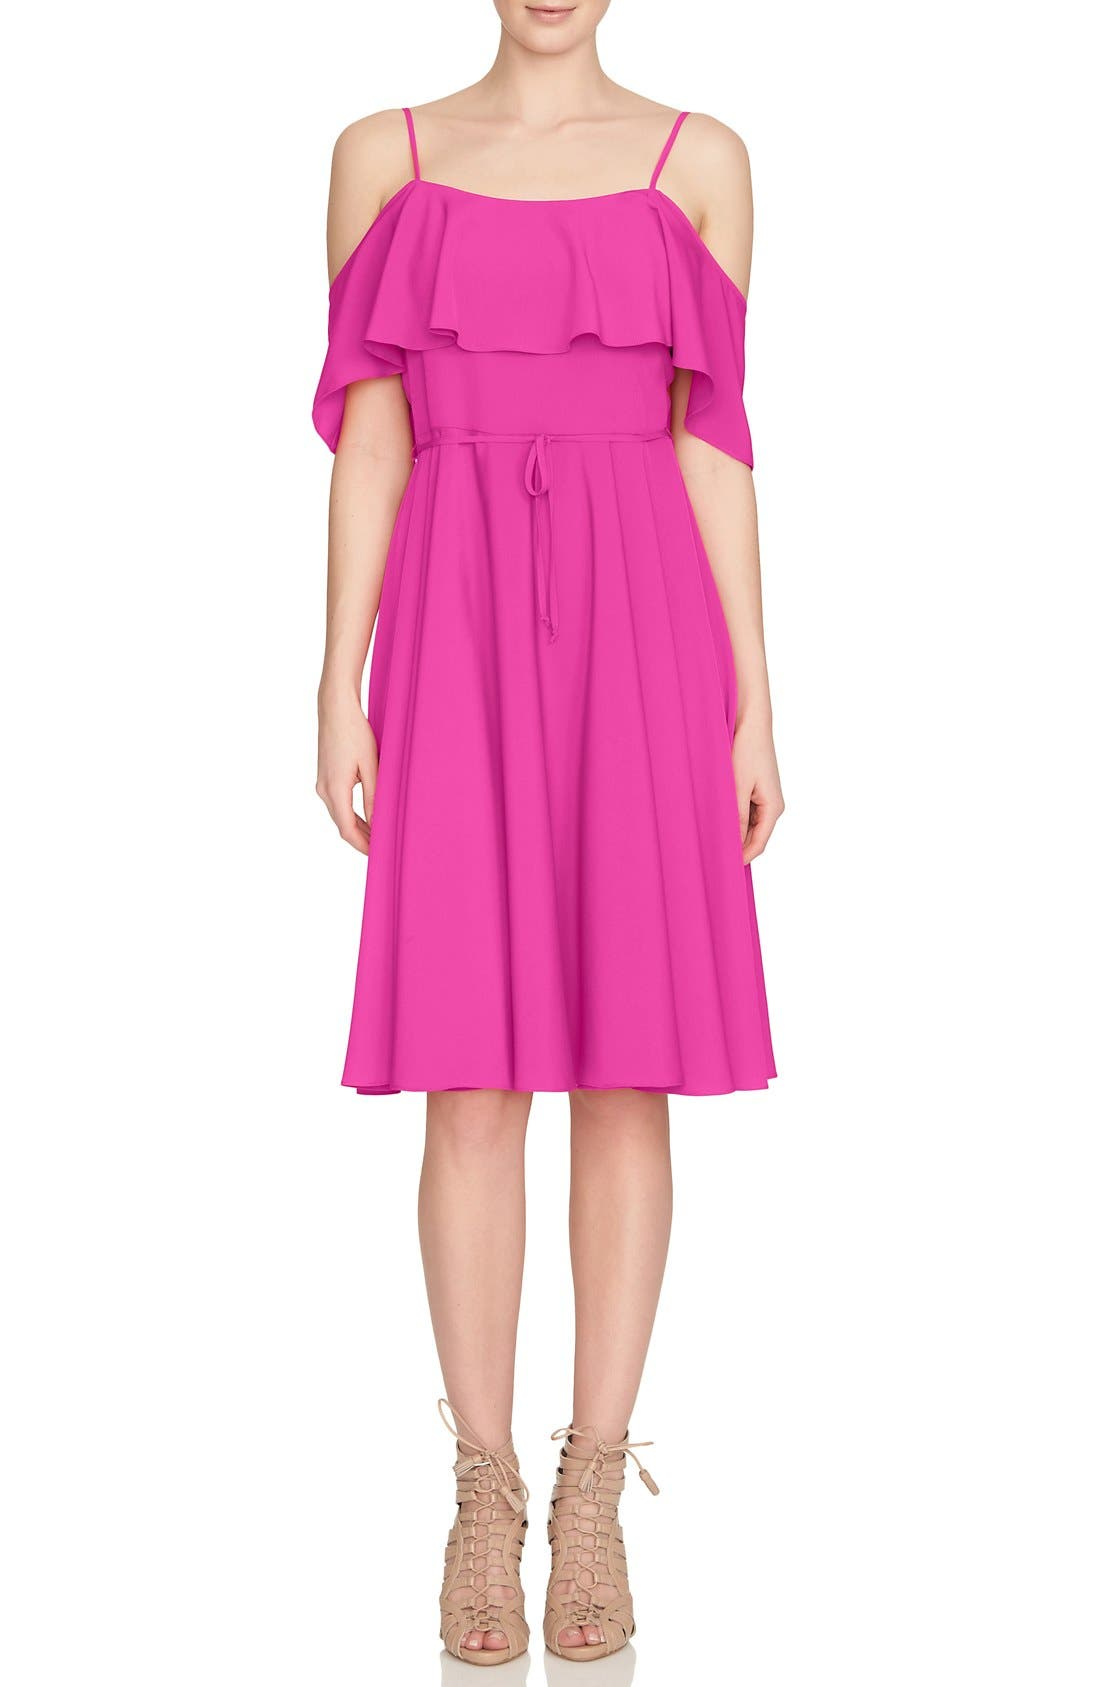 Alternate Image 1 Selected - CeCe 'Jackie' Cold Shoulder Fit & Flare Dress